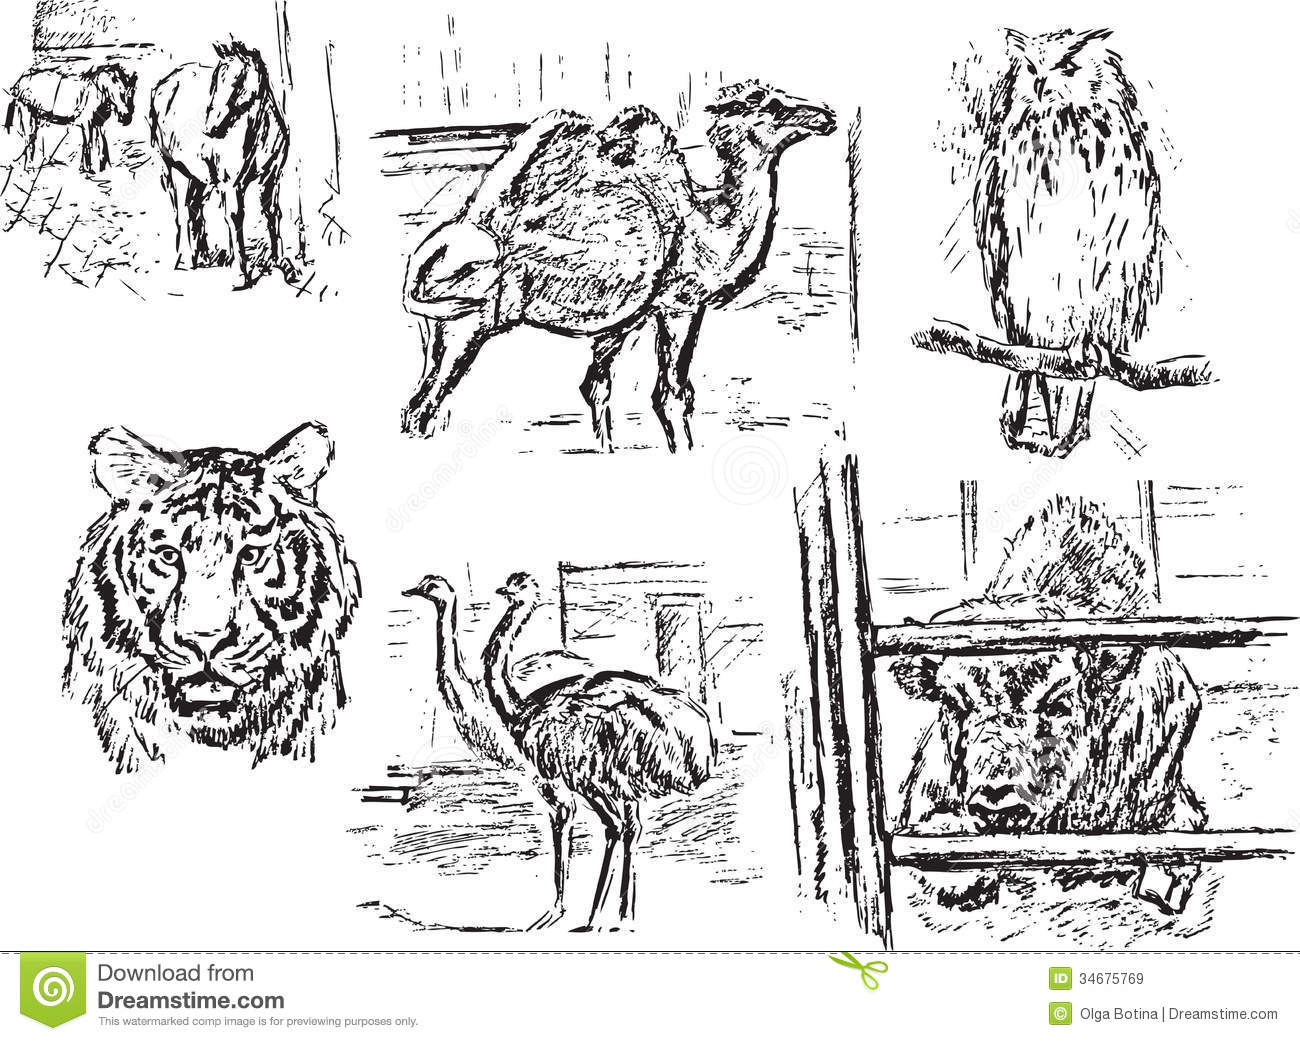 It's just a graphic of Magic Drawing Zoo Animals